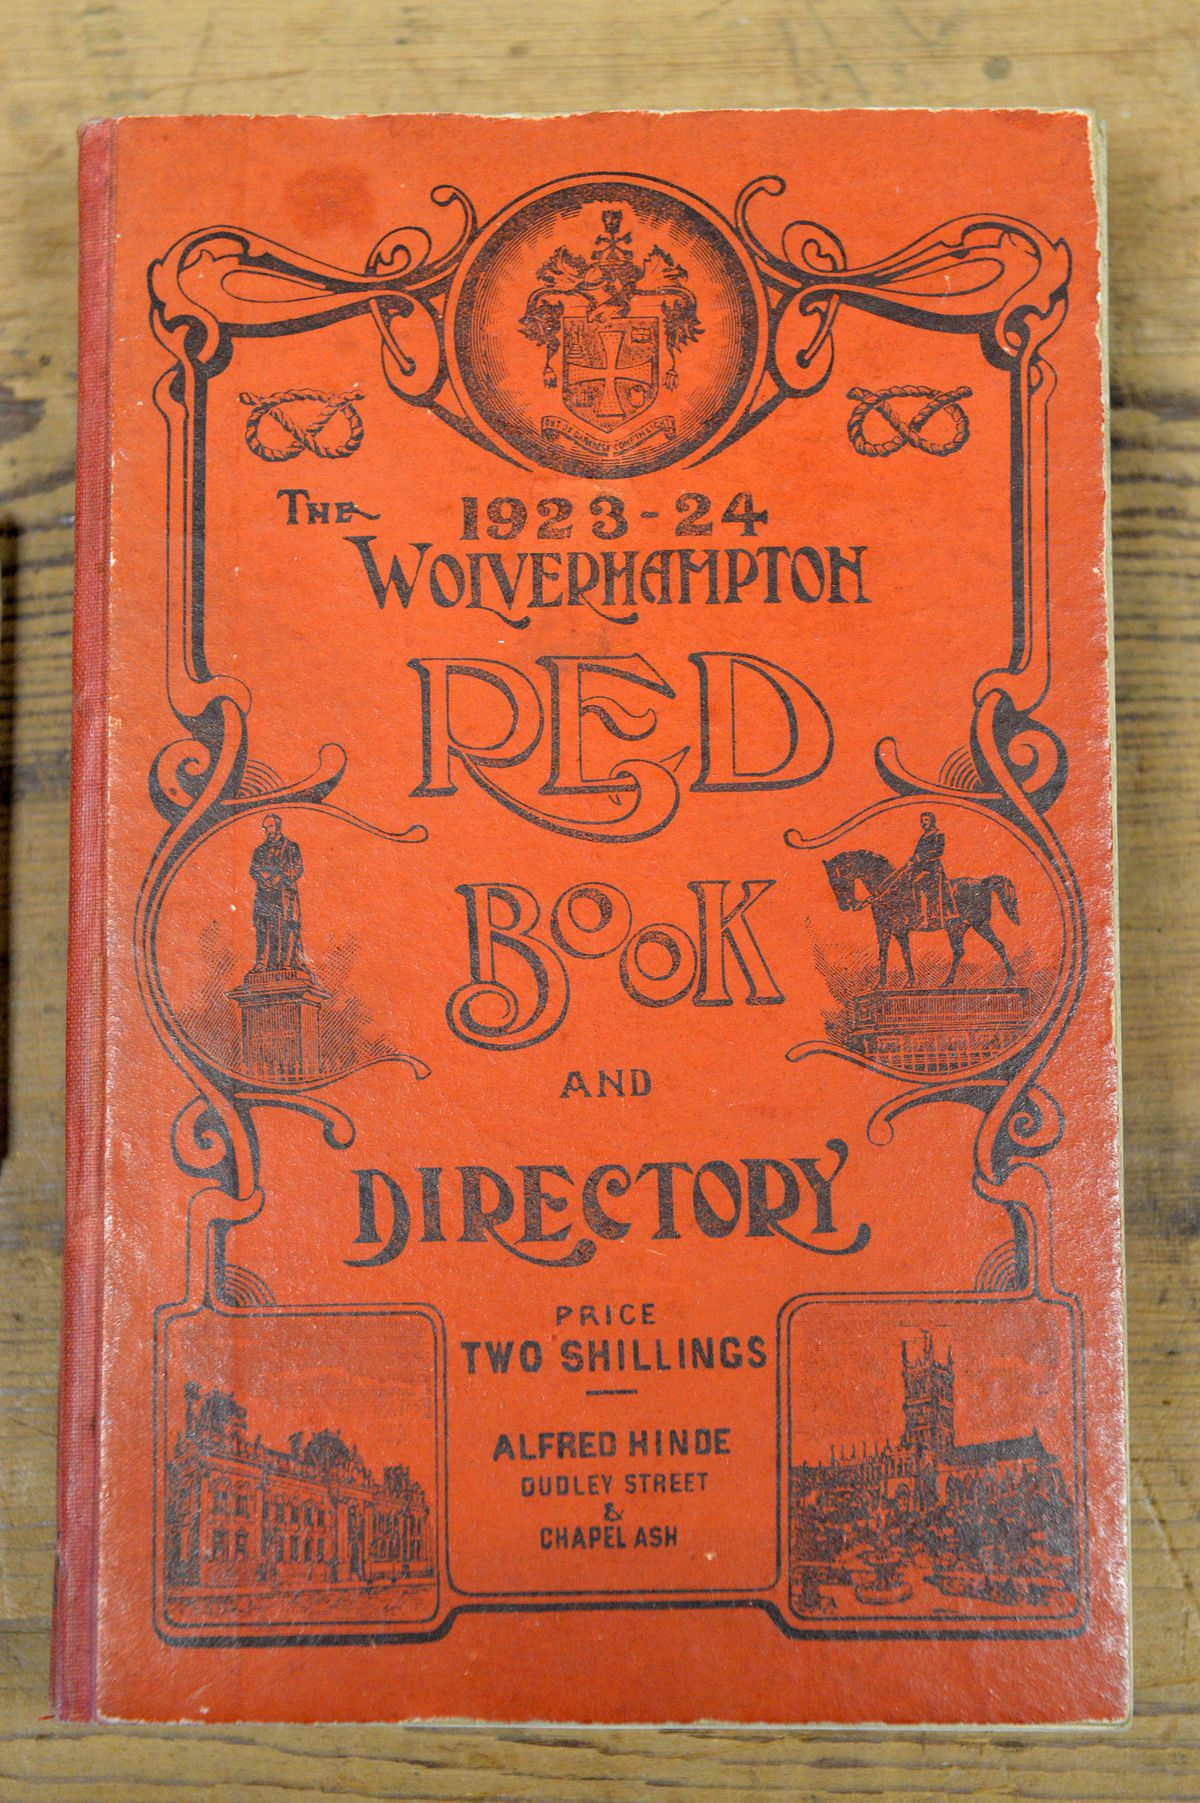 A directory from 1923